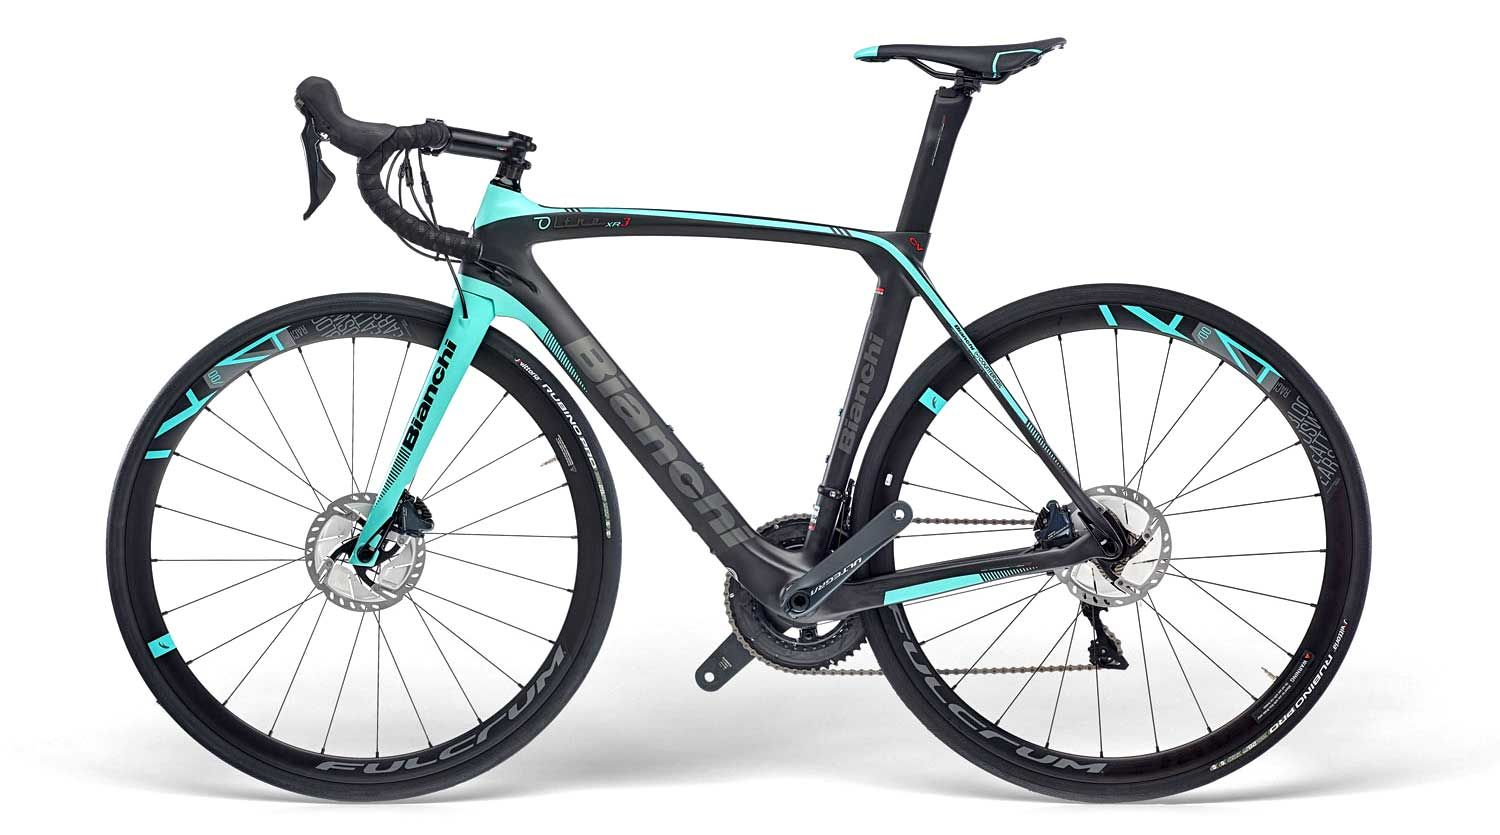 New Bianchi Oltre Xr3 Disc Is Their First Disc Brake Countervail